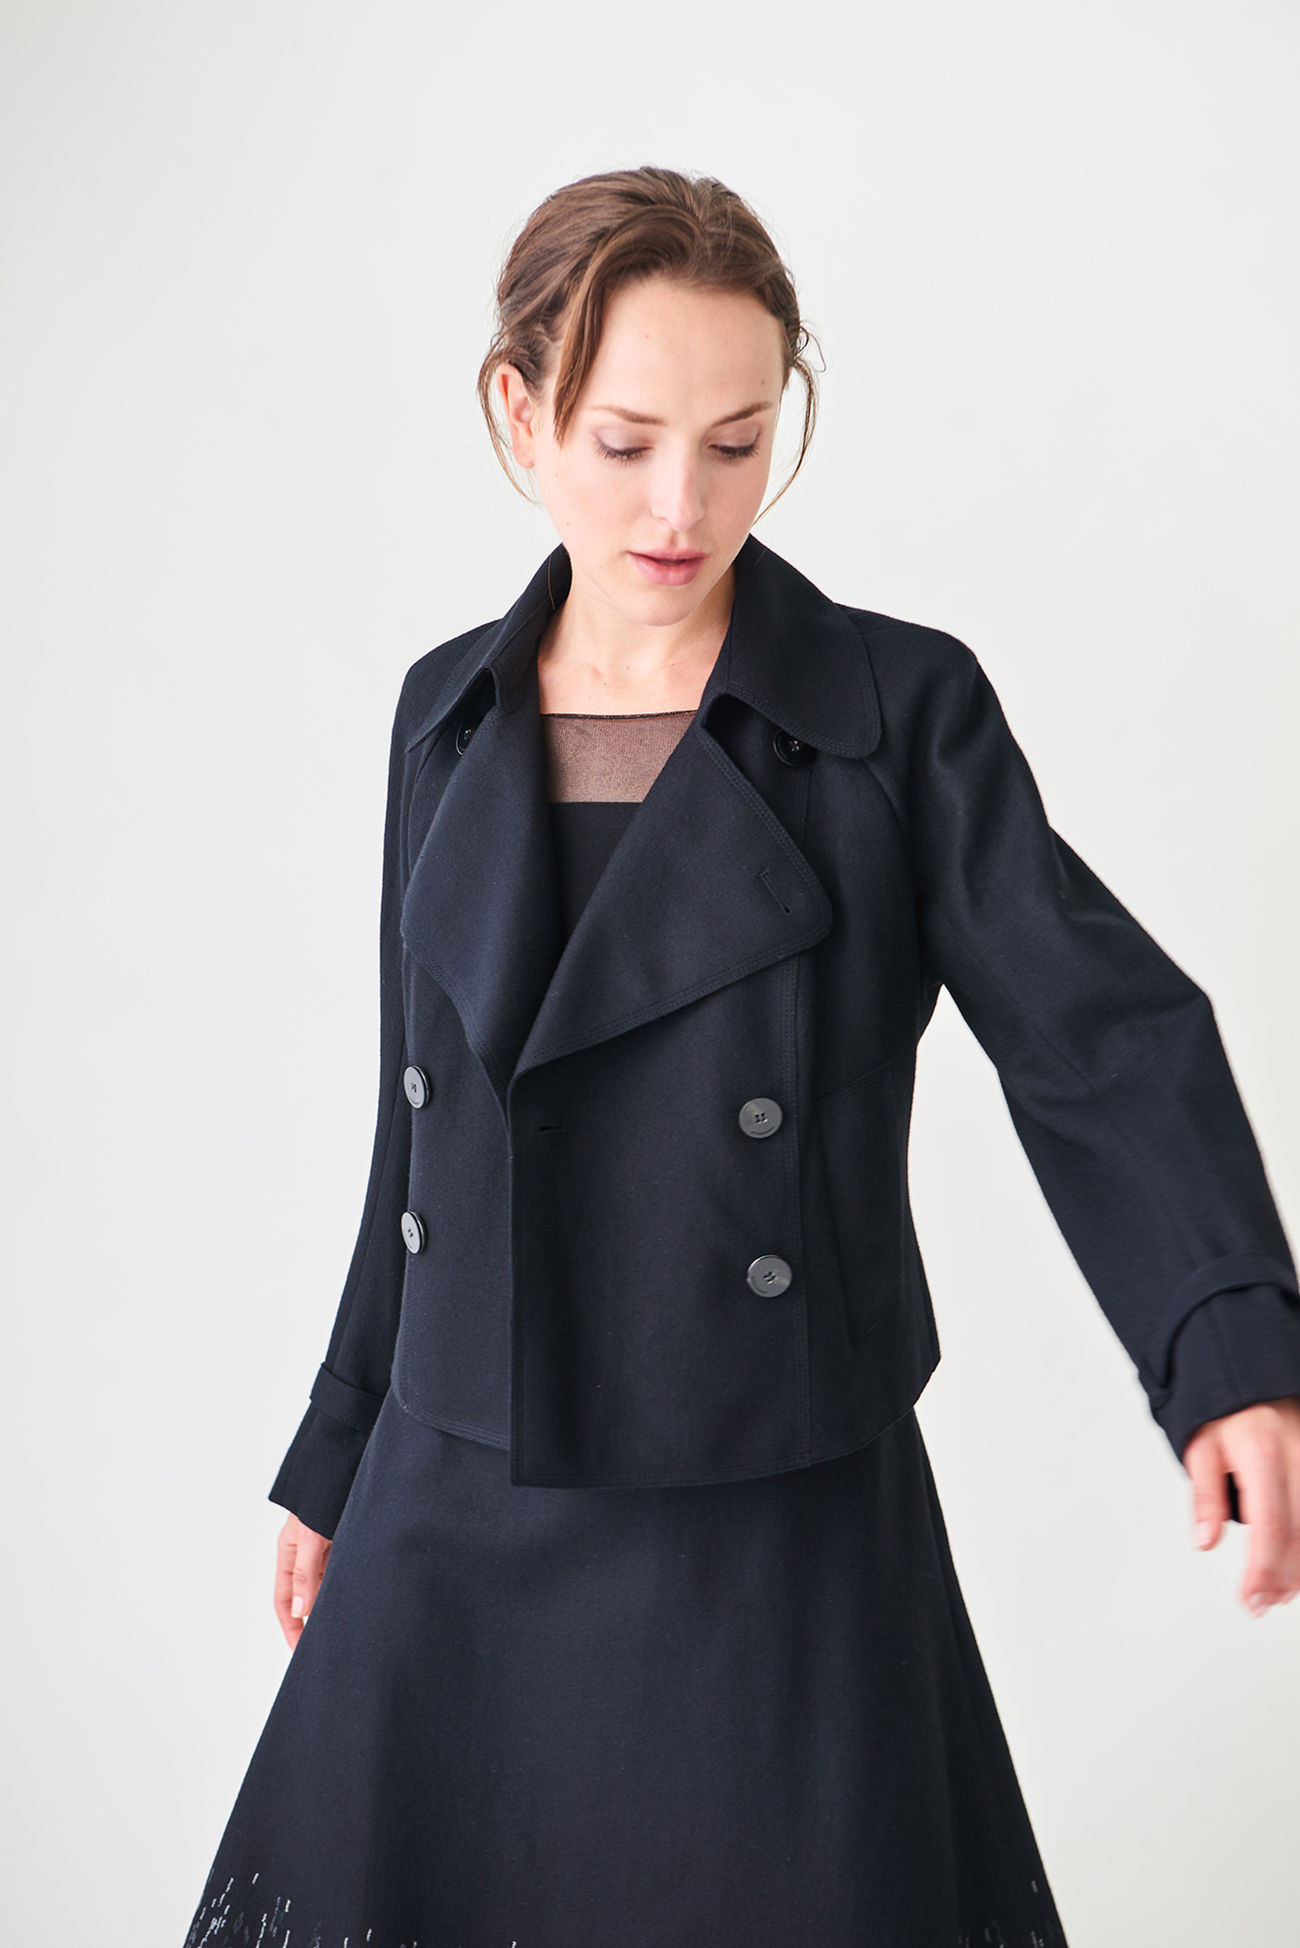 Waist-length wool jacket in a sailor style